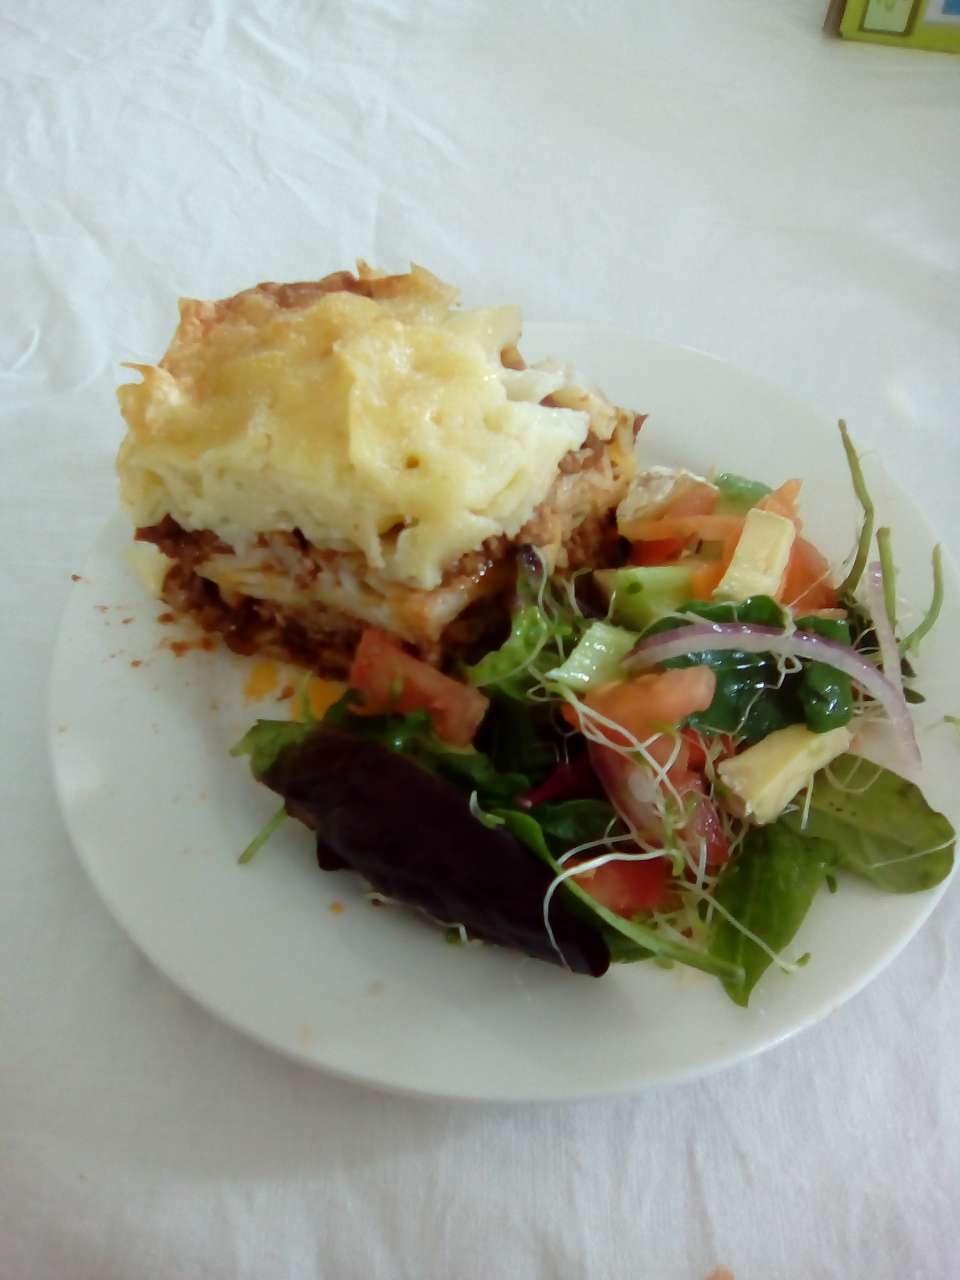 Me and my kids made Lasagna & salad for tea last night....<br />Have a good weekend